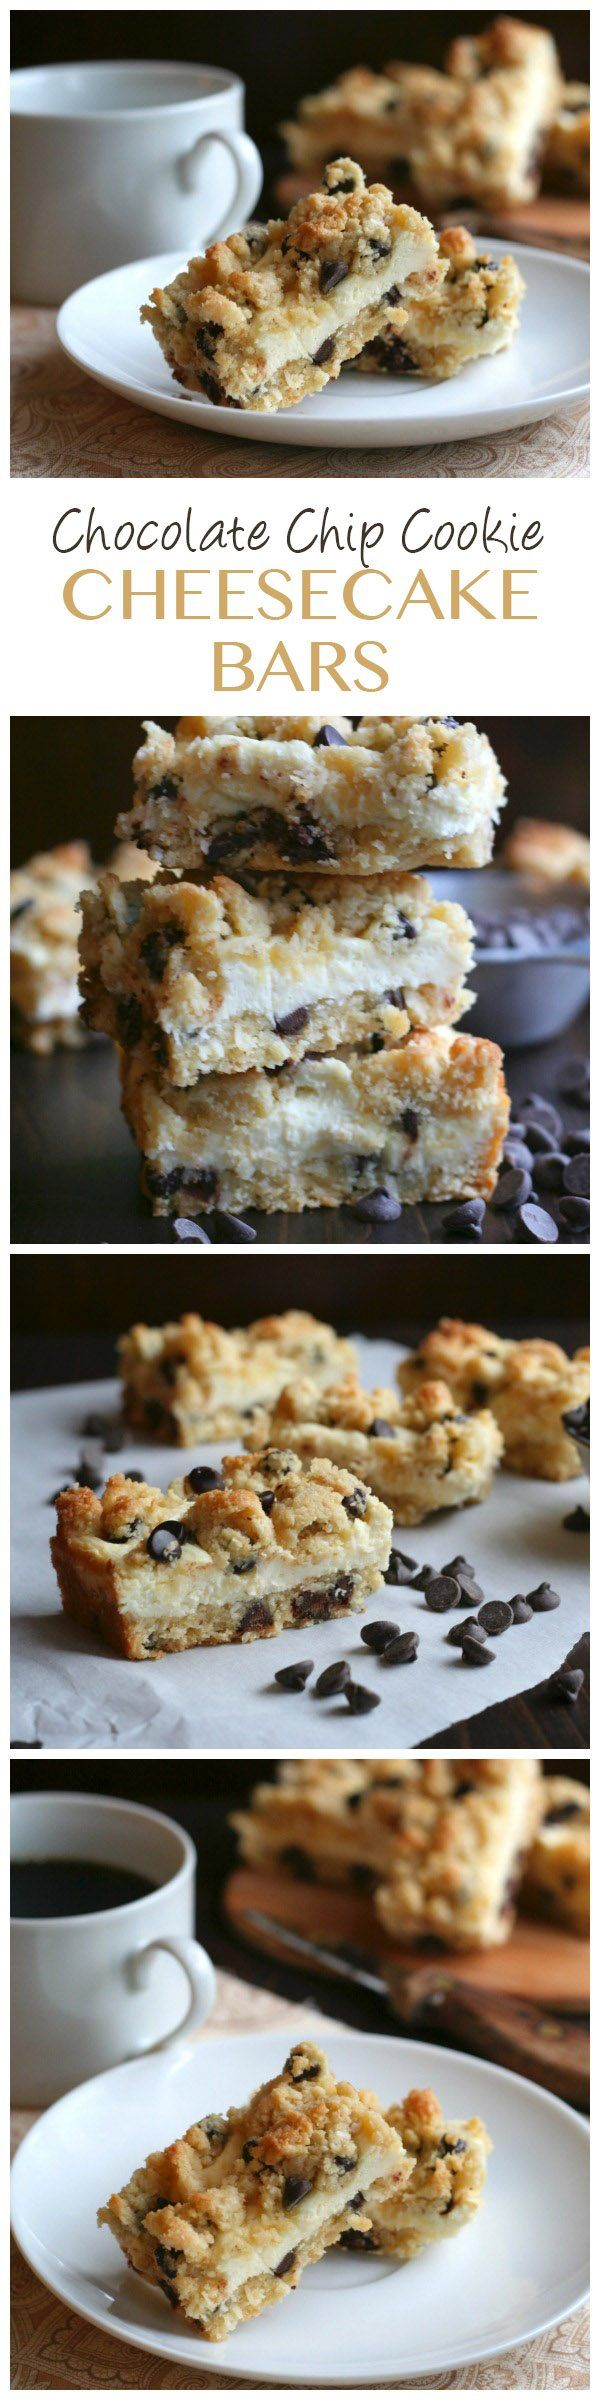 The best low carb chocolate chip cookie cheesecake bars. Seriously, two of your favorite desserts in one healthy package. Keto THM Banting recipe.  via @dreamaboutfood